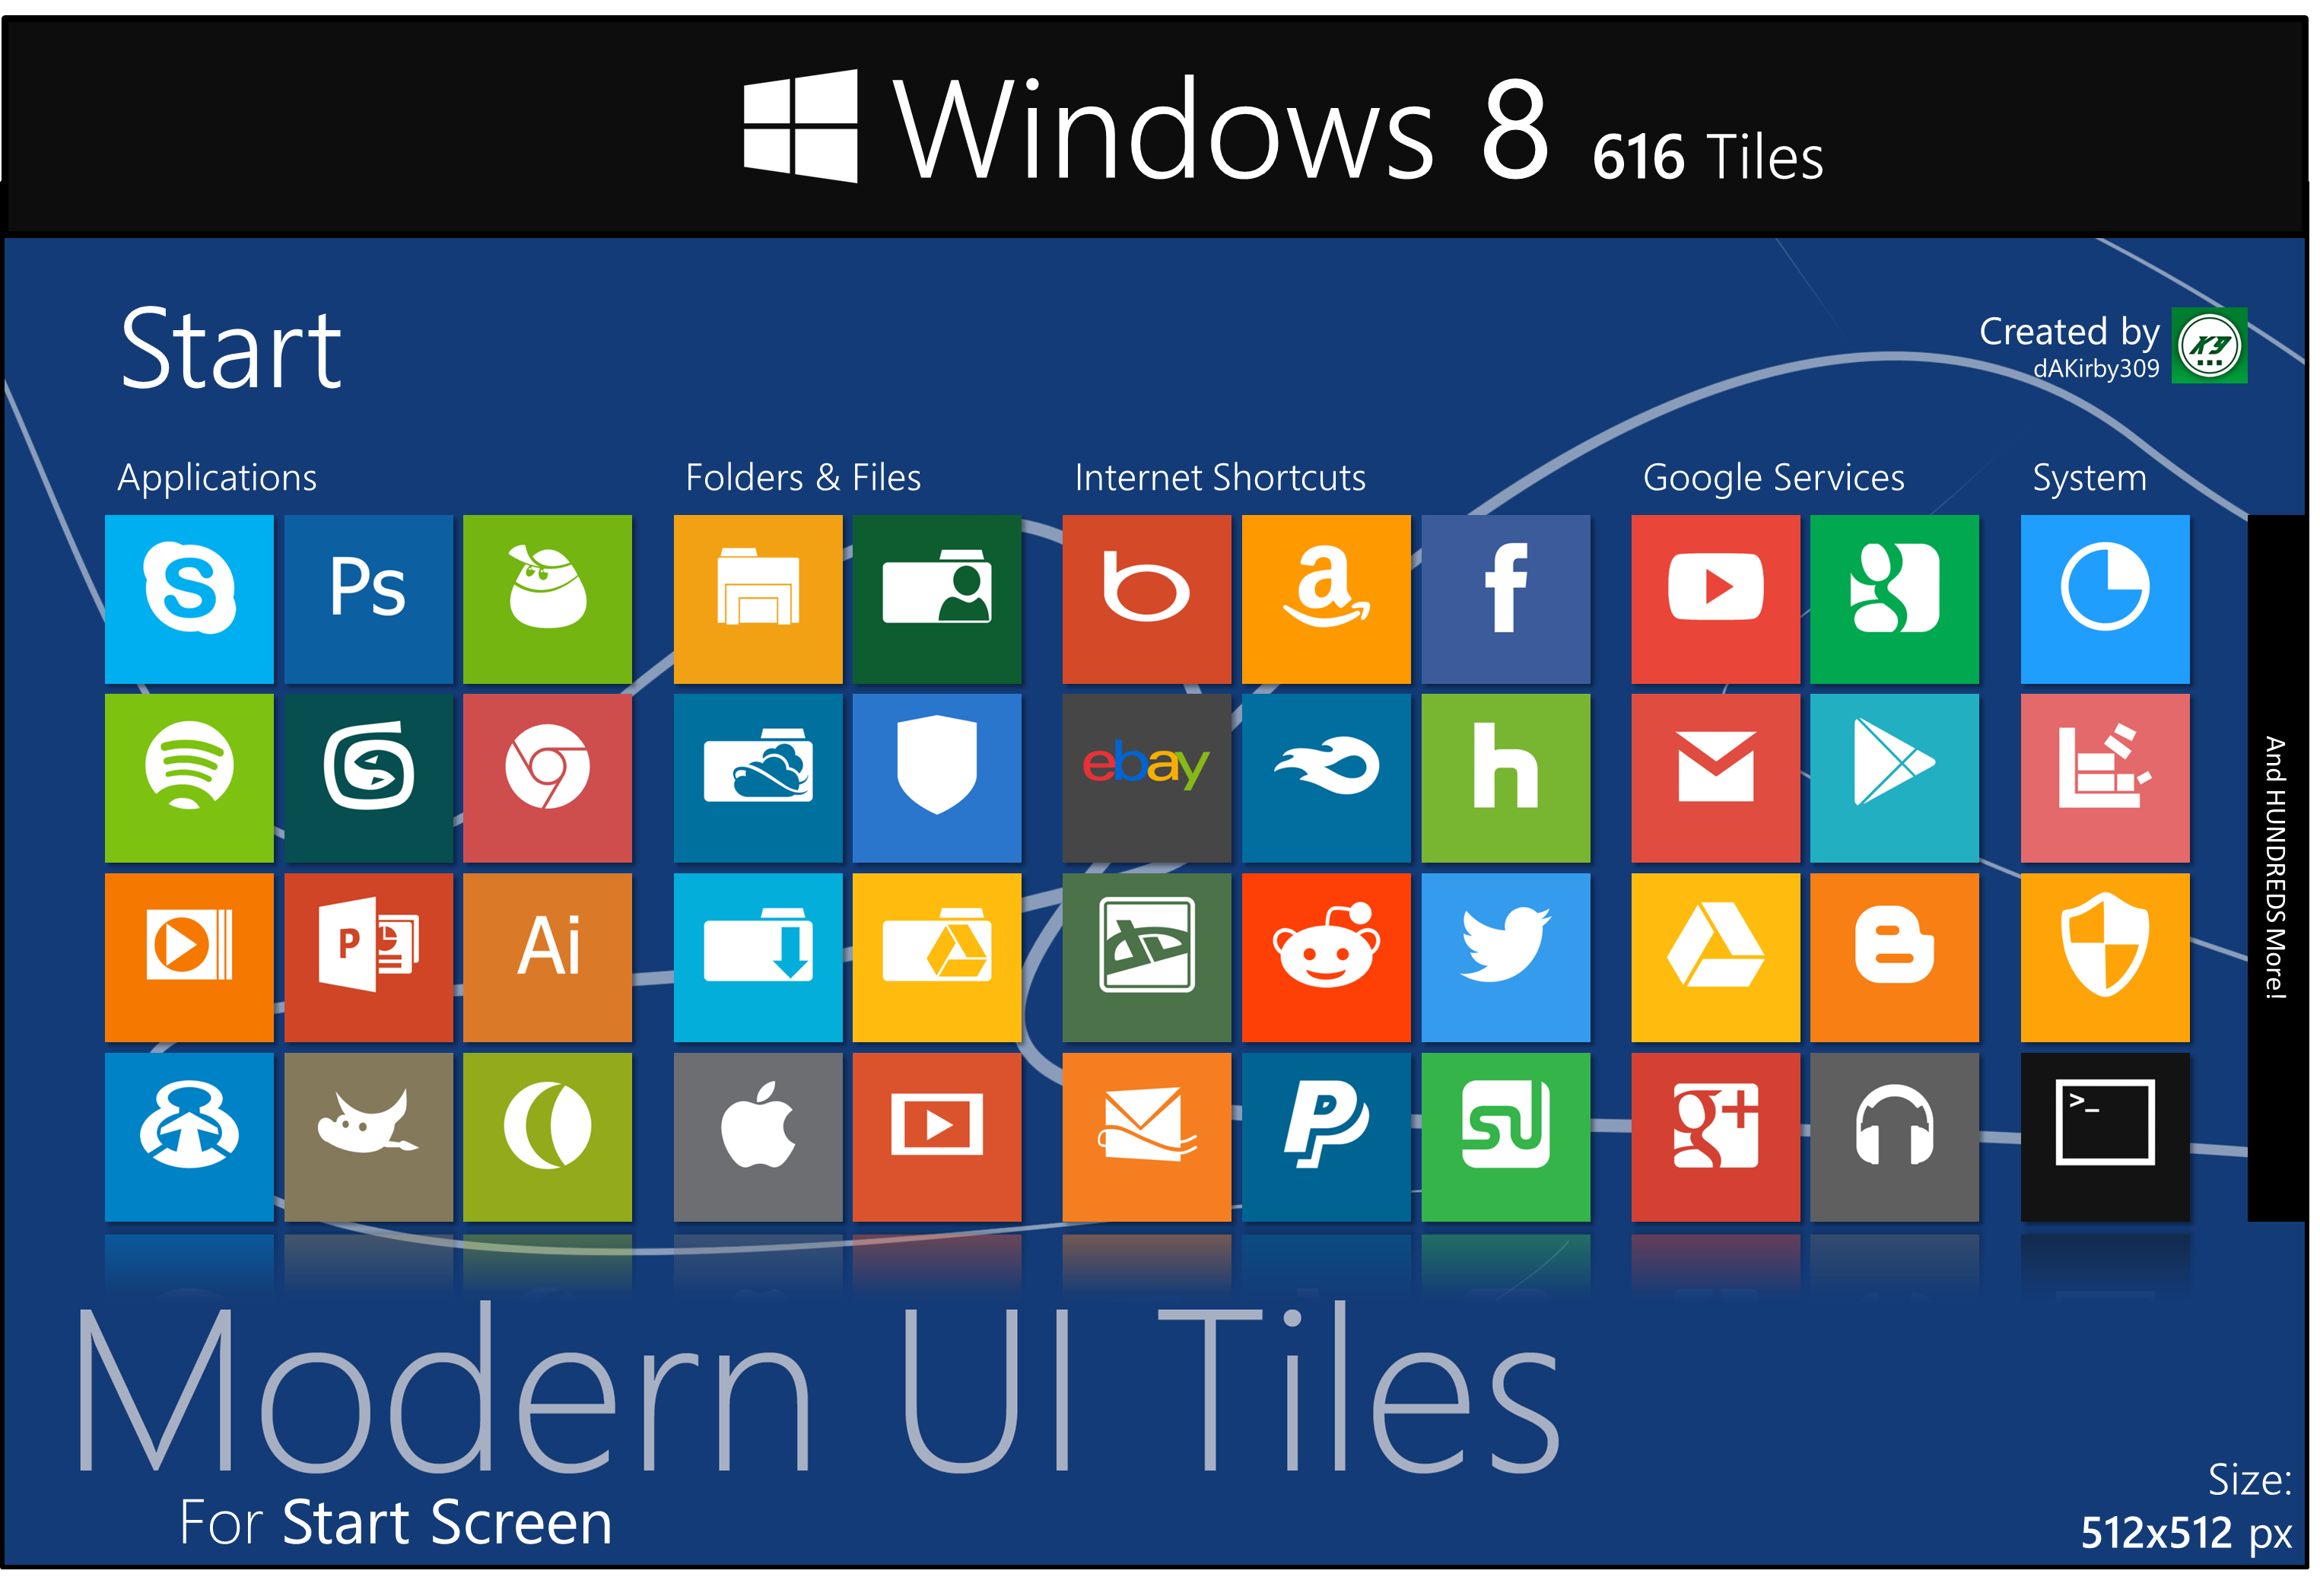 modern_ui_tiles_icon_set___616_tiles_by_dakirby309-d67xdi1